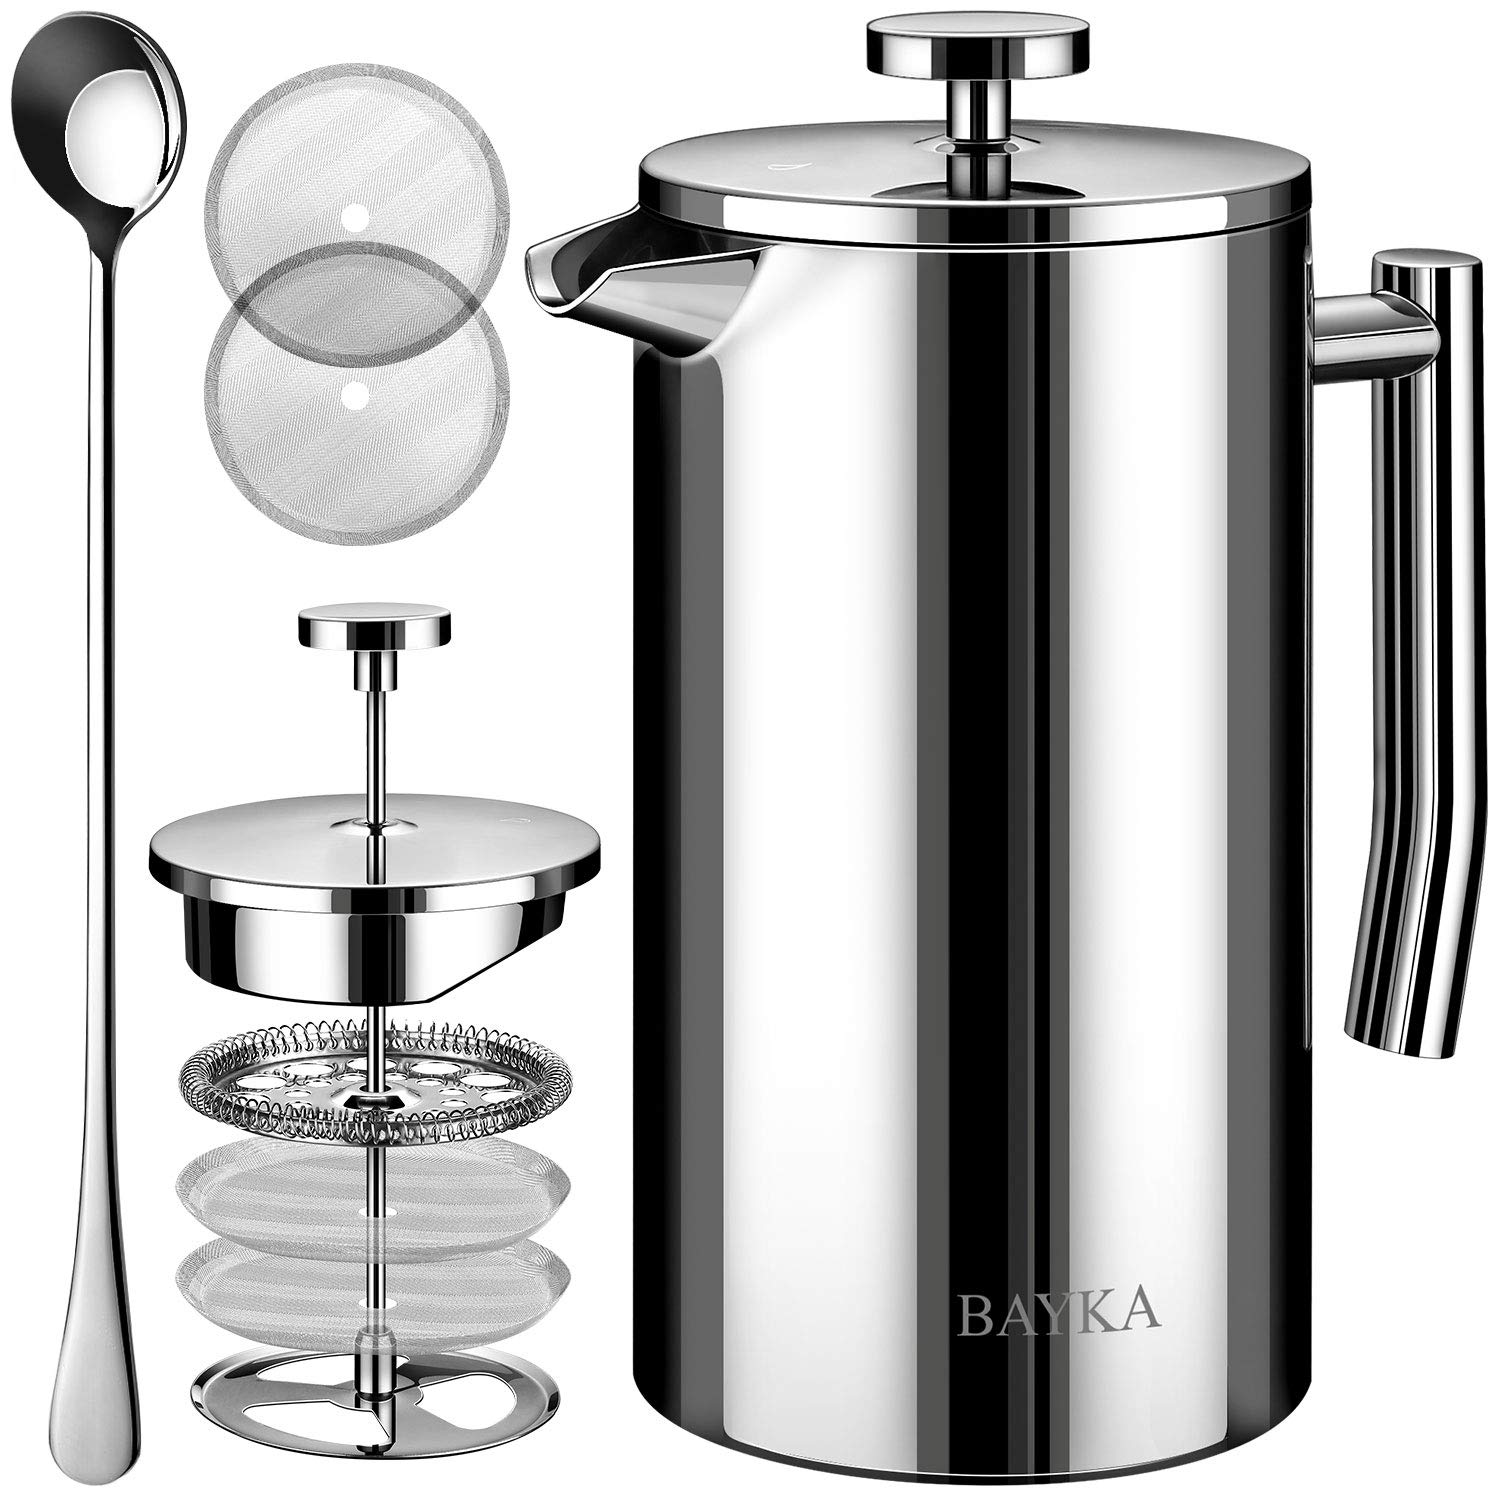 BAYKA French Press Coffee and Tea Maker, 34oz Double-Wall Stainless Steel Metal Insulated Pot with 4 Level Filtration System, Rust-Free, Dishwasher Safe by BAYKA